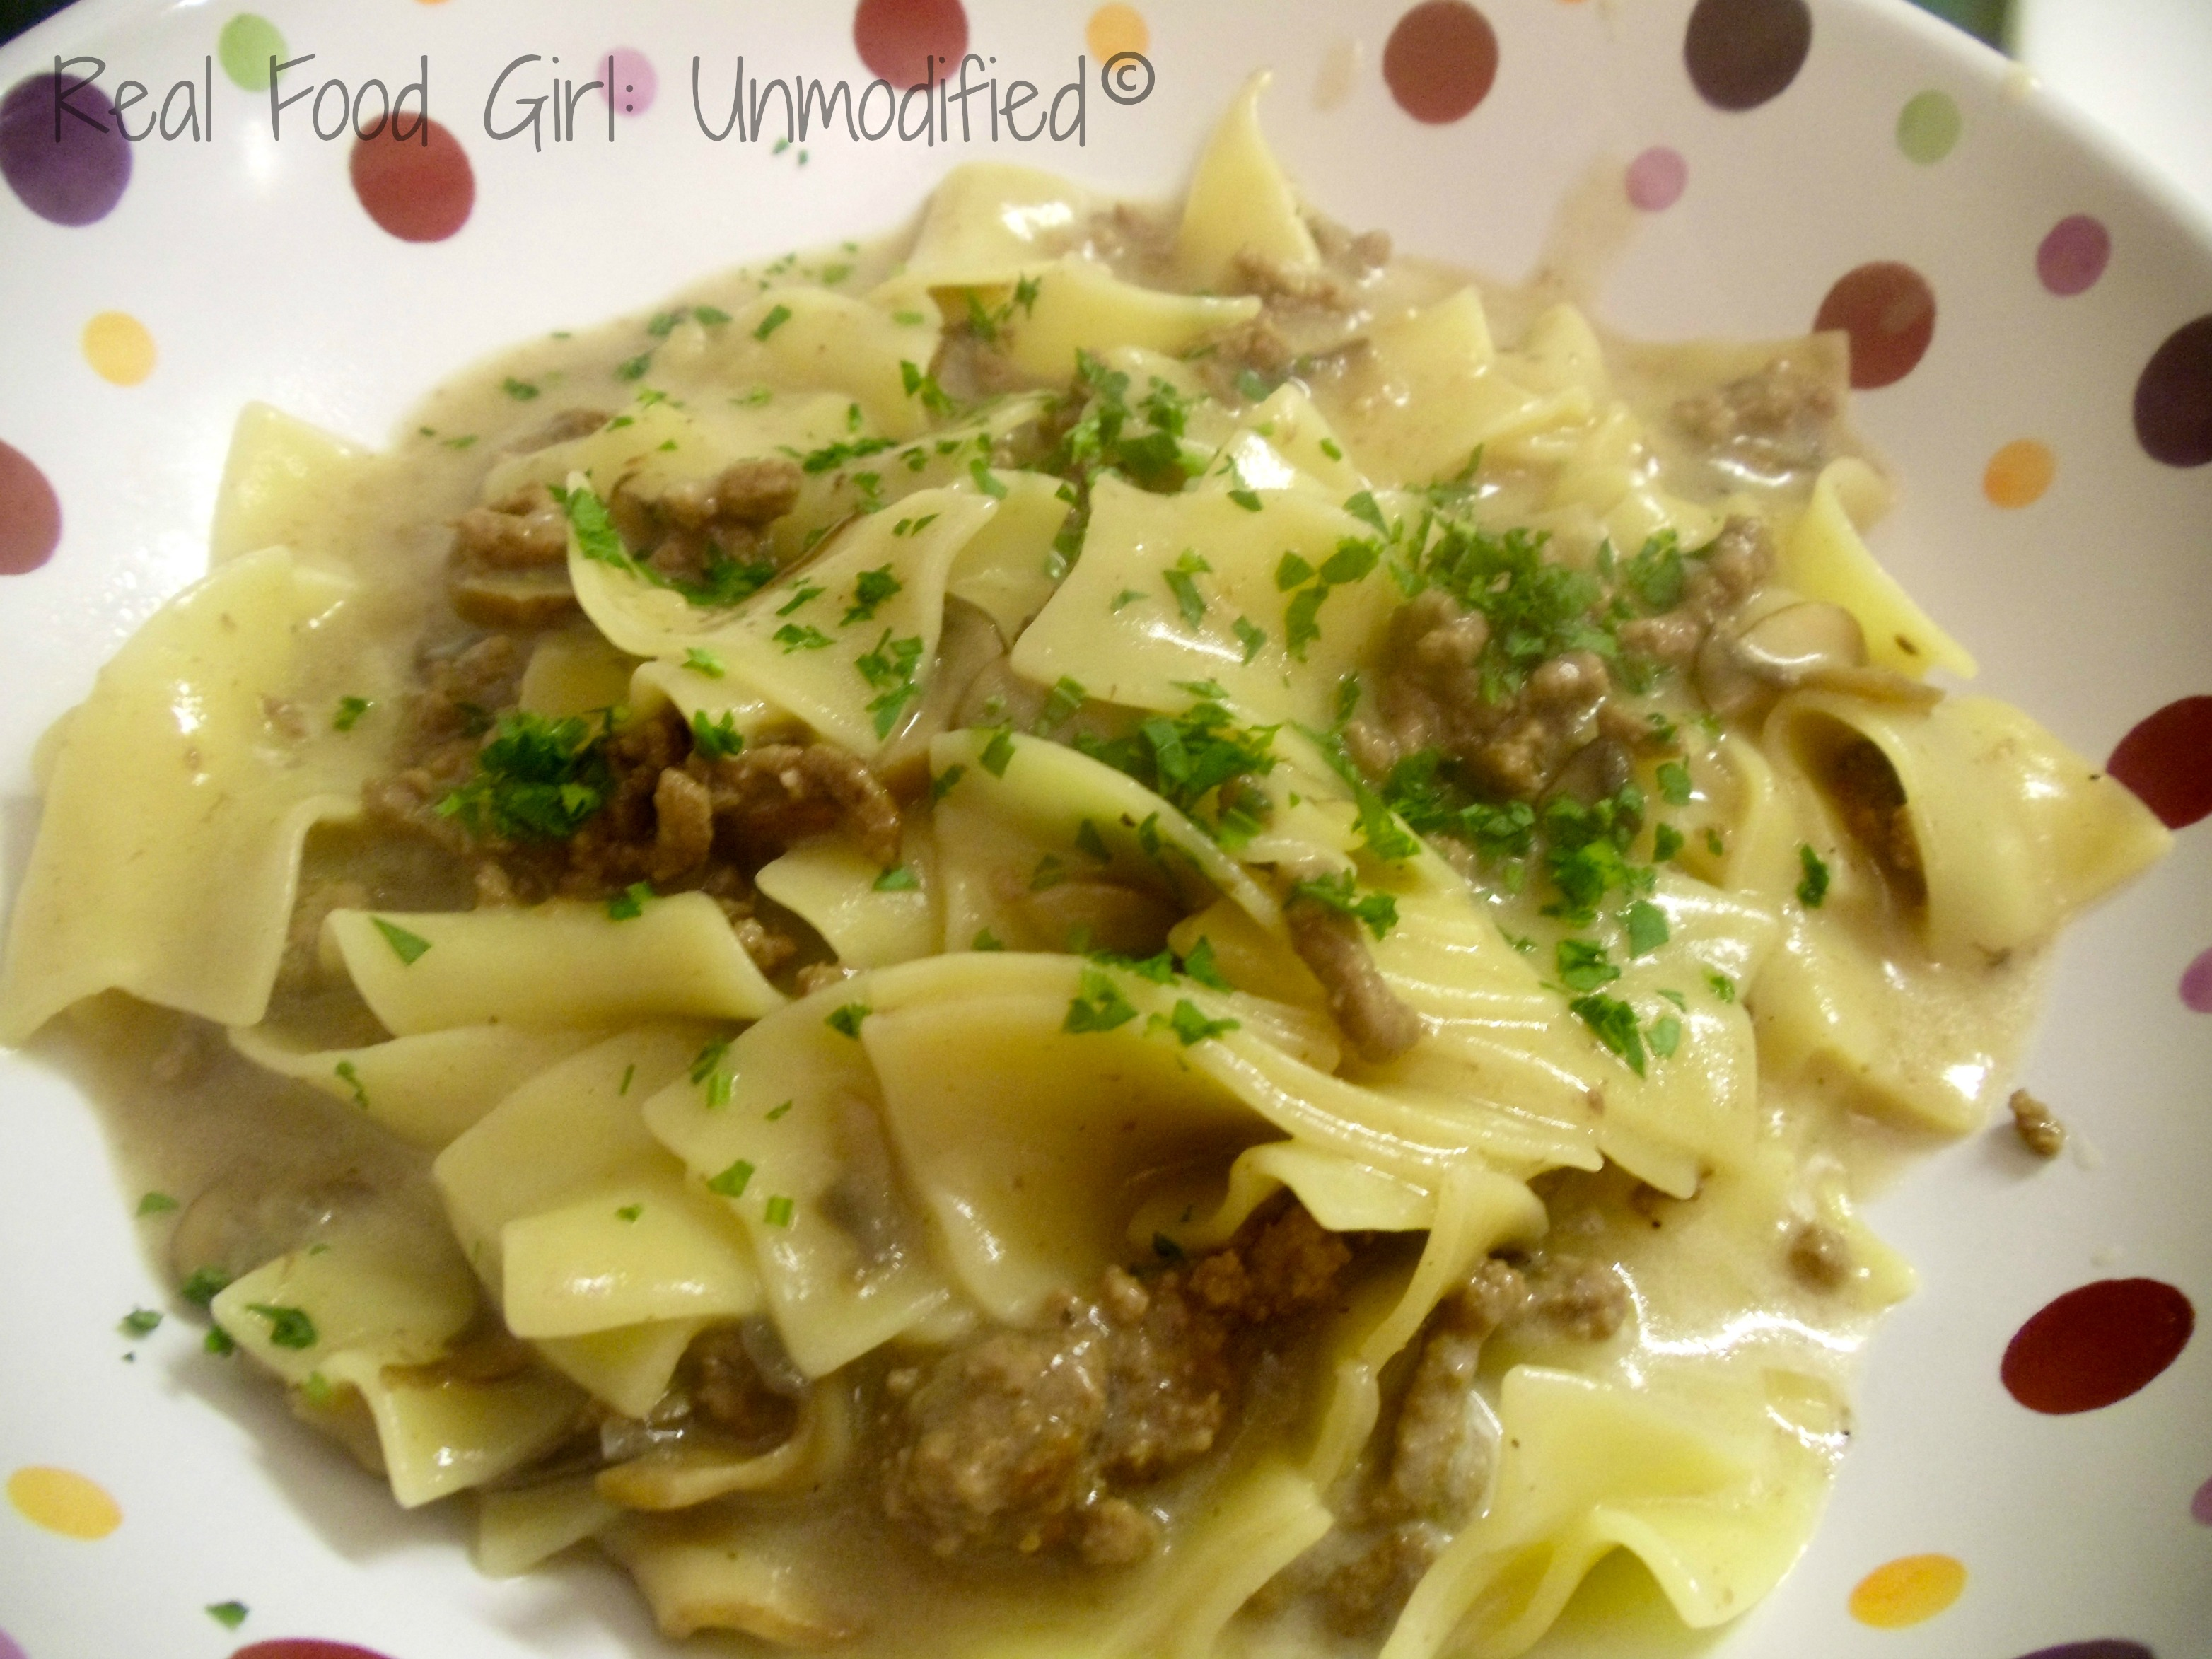 From fridge to table in under 60 minutes. Creamy Mushroom & Beef Stroganoff. Organic and GMO-Free. #Real Food Girl: Unmodified